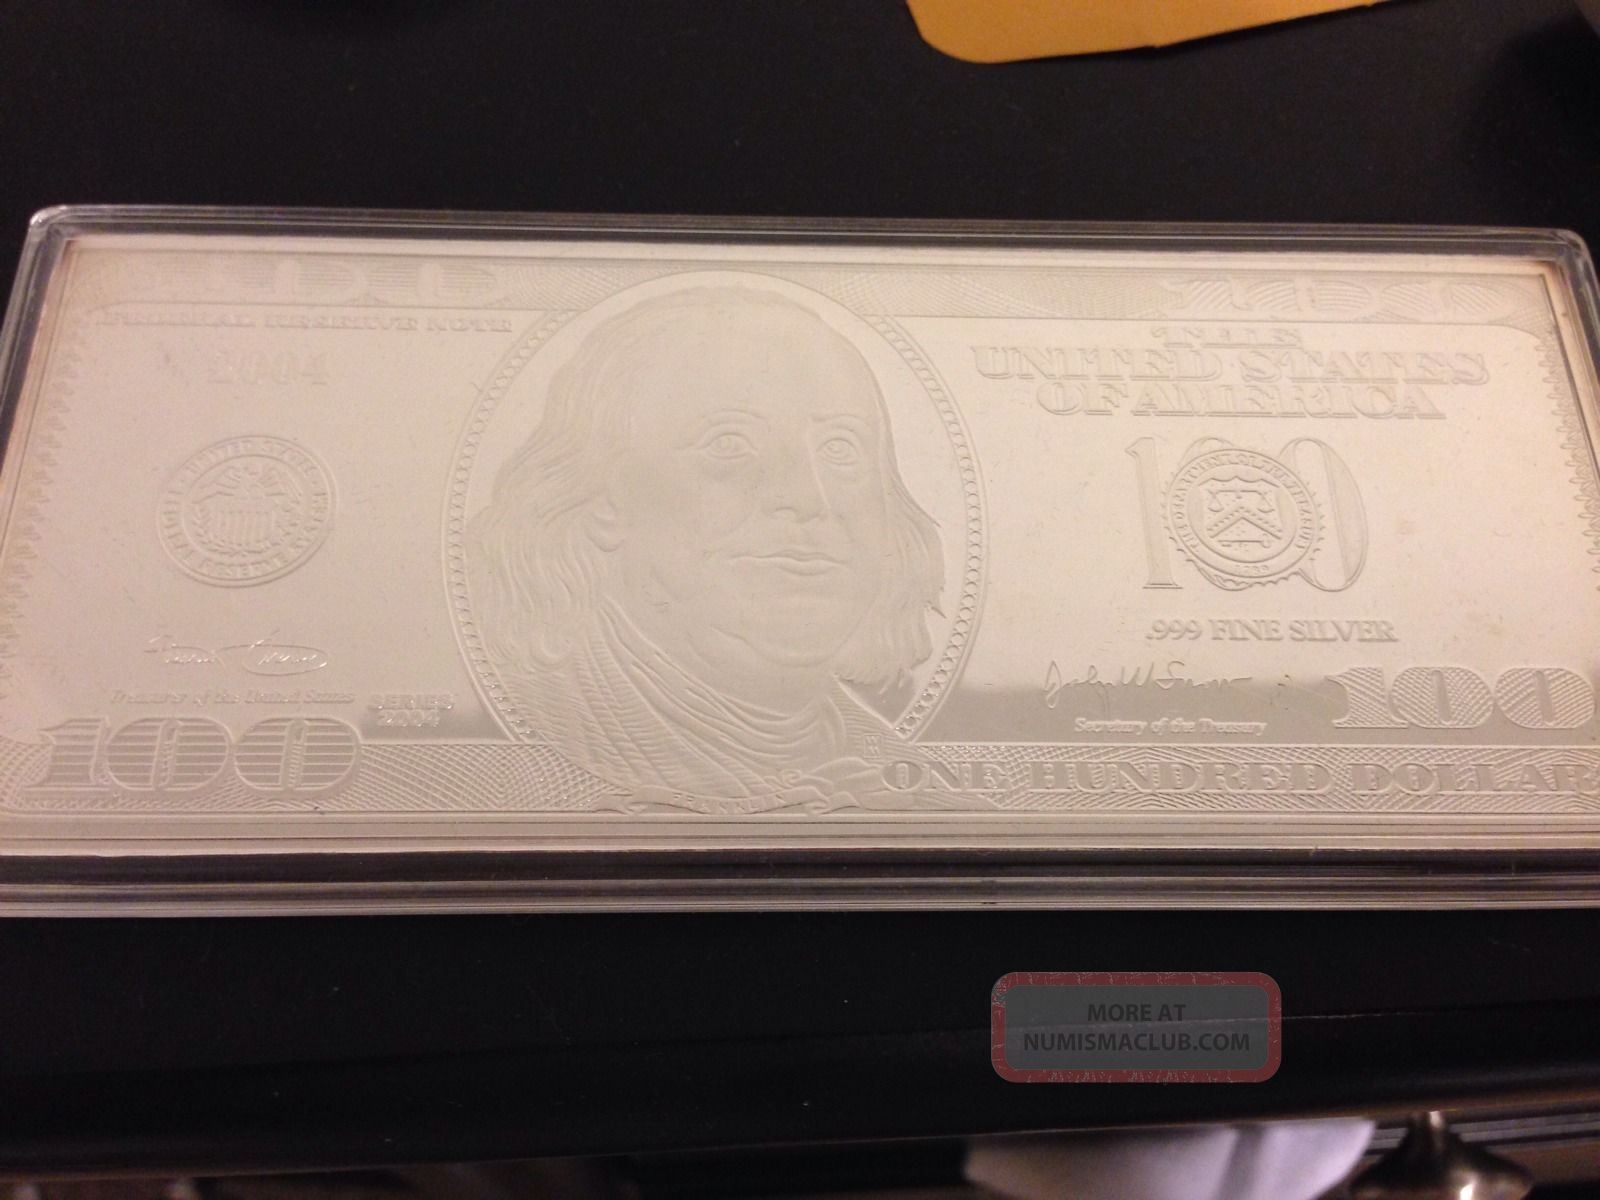 2004 100 Dollar Bill Benjamin Franklin 4oz 999 Silver Art